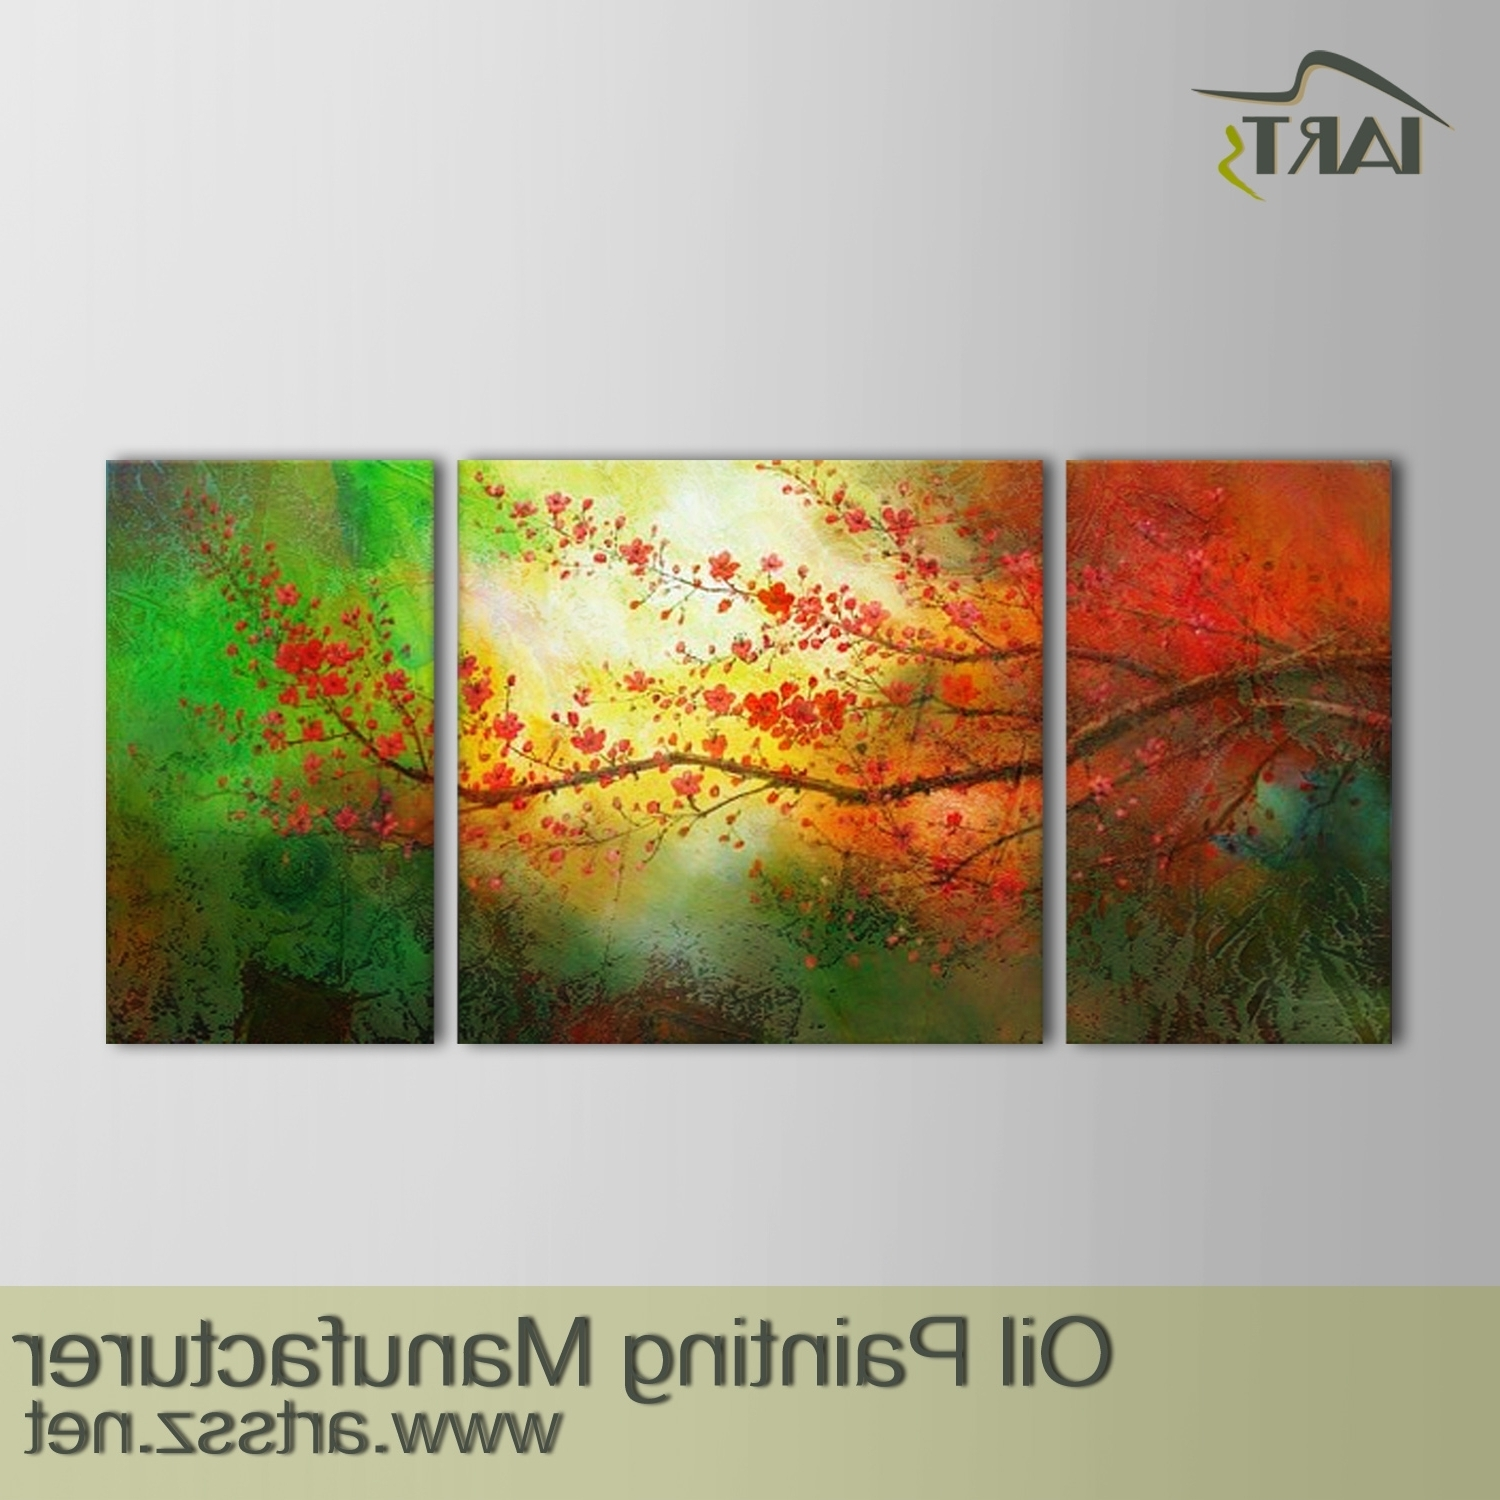 [%100% Handmade Abstract Oil Painting – Iarts – Professional Wall In Current Abstract Nature Canvas Wall Art|Abstract Nature Canvas Wall Art Intended For Current 100% Handmade Abstract Oil Painting – Iarts – Professional Wall|Current Abstract Nature Canvas Wall Art In 100% Handmade Abstract Oil Painting – Iarts – Professional Wall|Most Popular 100% Handmade Abstract Oil Painting – Iarts – Professional Wall With Regard To Abstract Nature Canvas Wall Art%] (View 1 of 15)